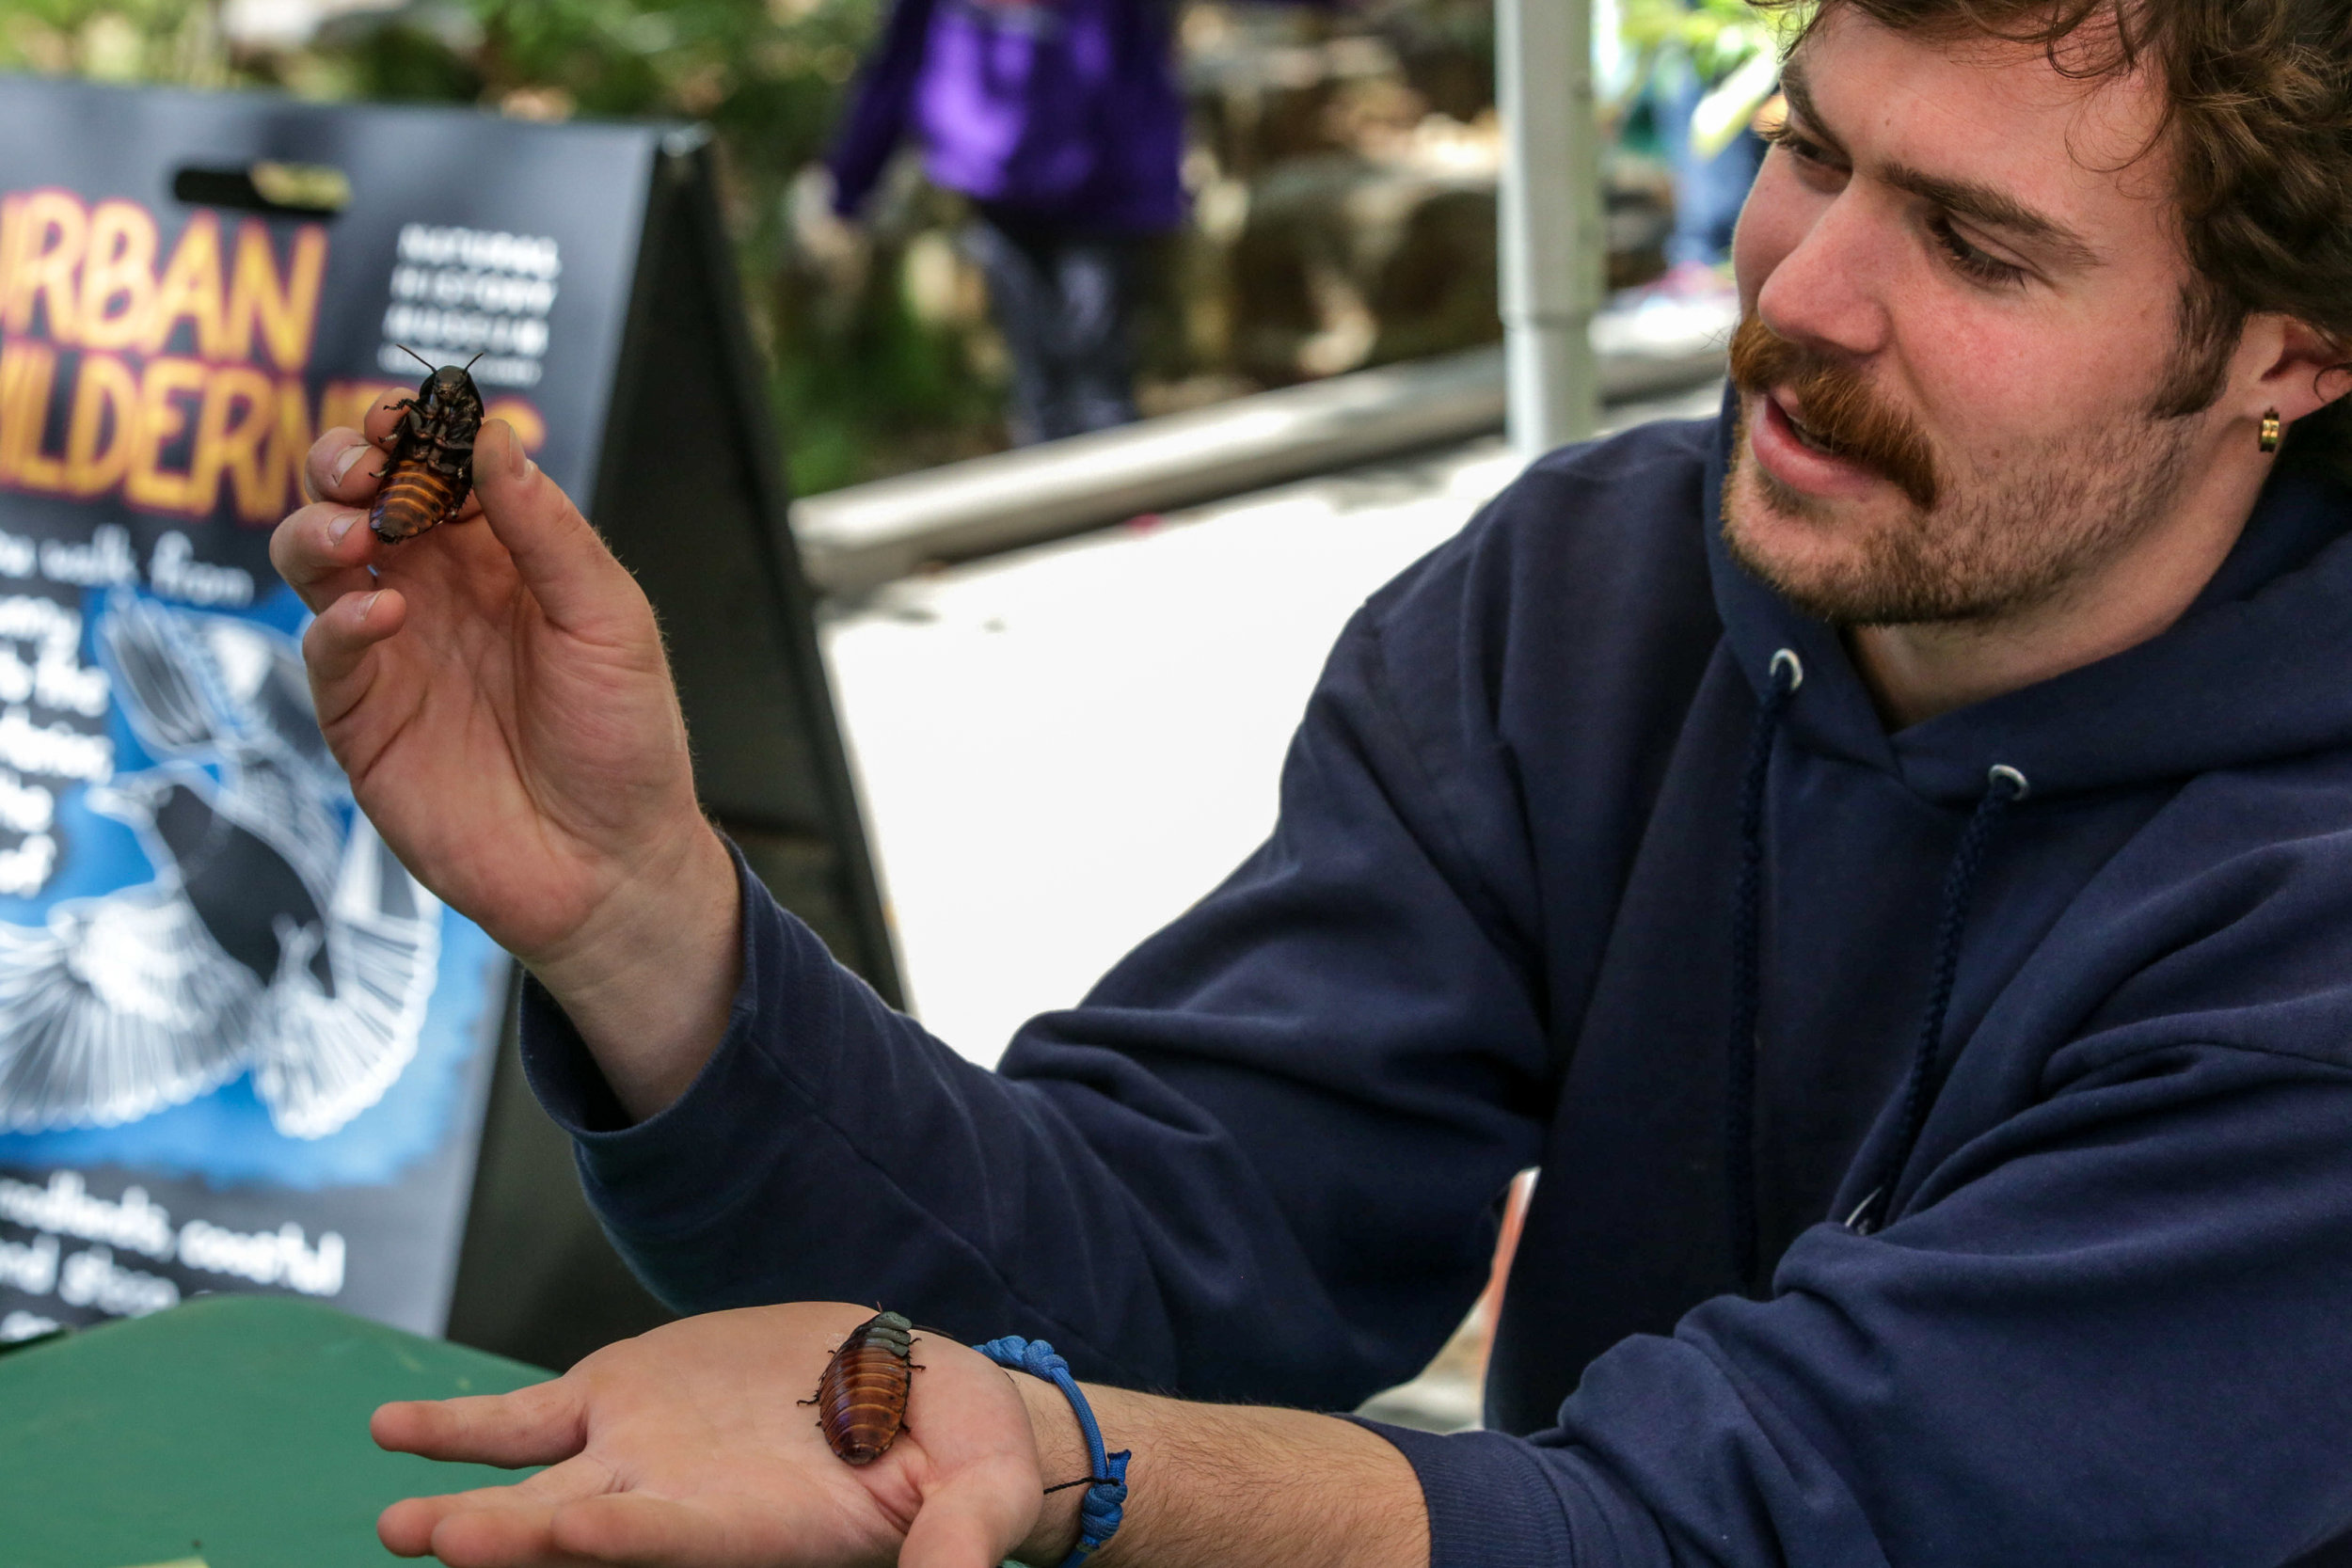 Urban Wildness shows Madagascar Hissing Coachroaches to the children attending the Los Angeles Nature Fest. Those and other creapy crawlers were on display at the Natural History Museum on the University of Southern California campus, Los Angeles, California. Events took place on Saturday, March 17, 2018 (Corsair Photo/William Wendelman)